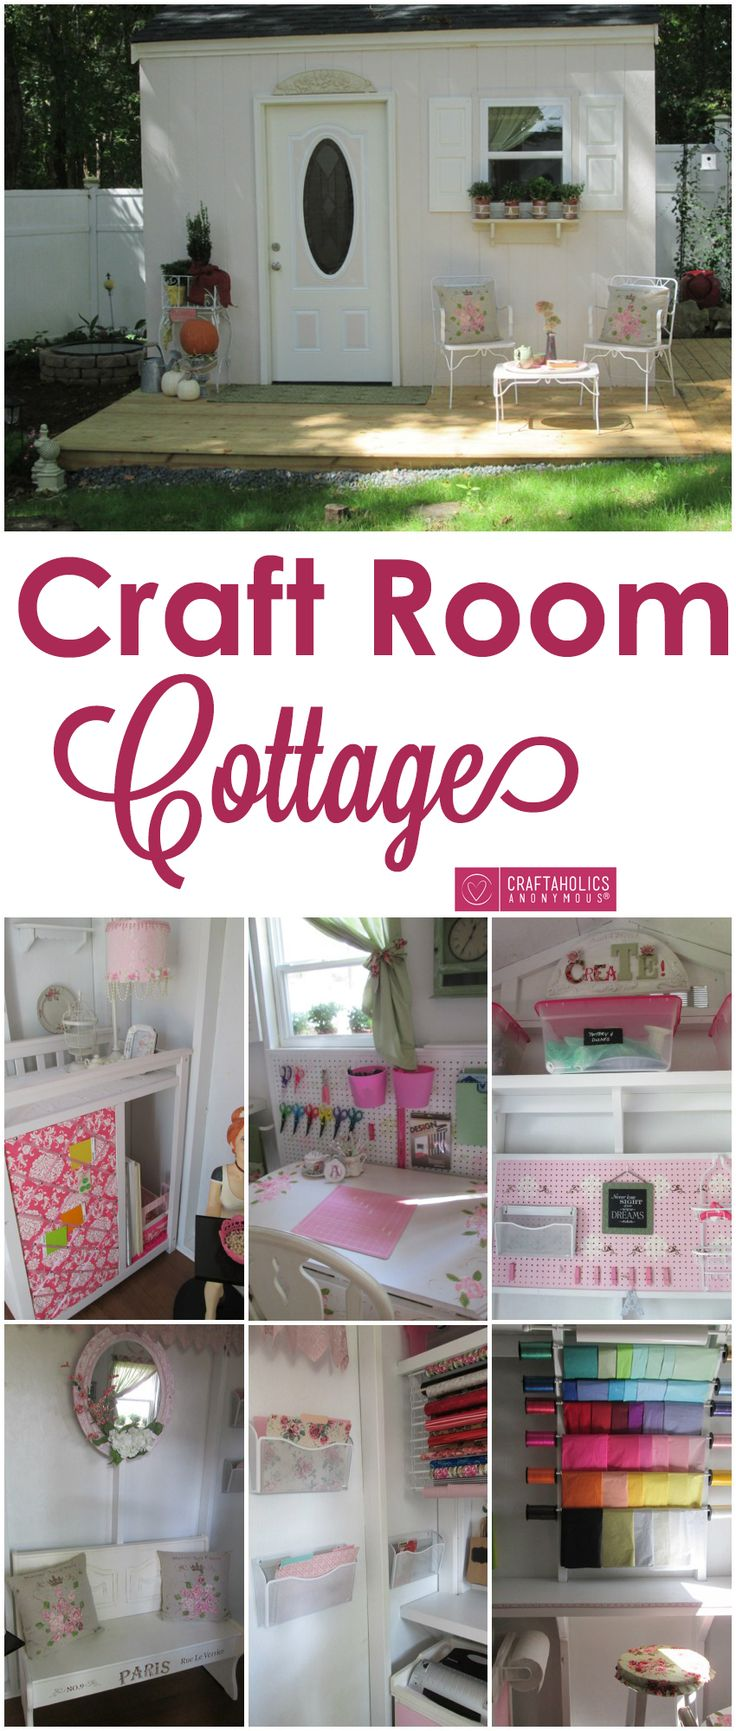 Check out this craft room tour of Ana's craft cottage! Pretty pink accents and DIY storage makes this craft room pretty and perfect for crafting! ||| These small spaces outside of the home are growing on me. Not wholly convinced I'd want one, but I'm intrigued. :)